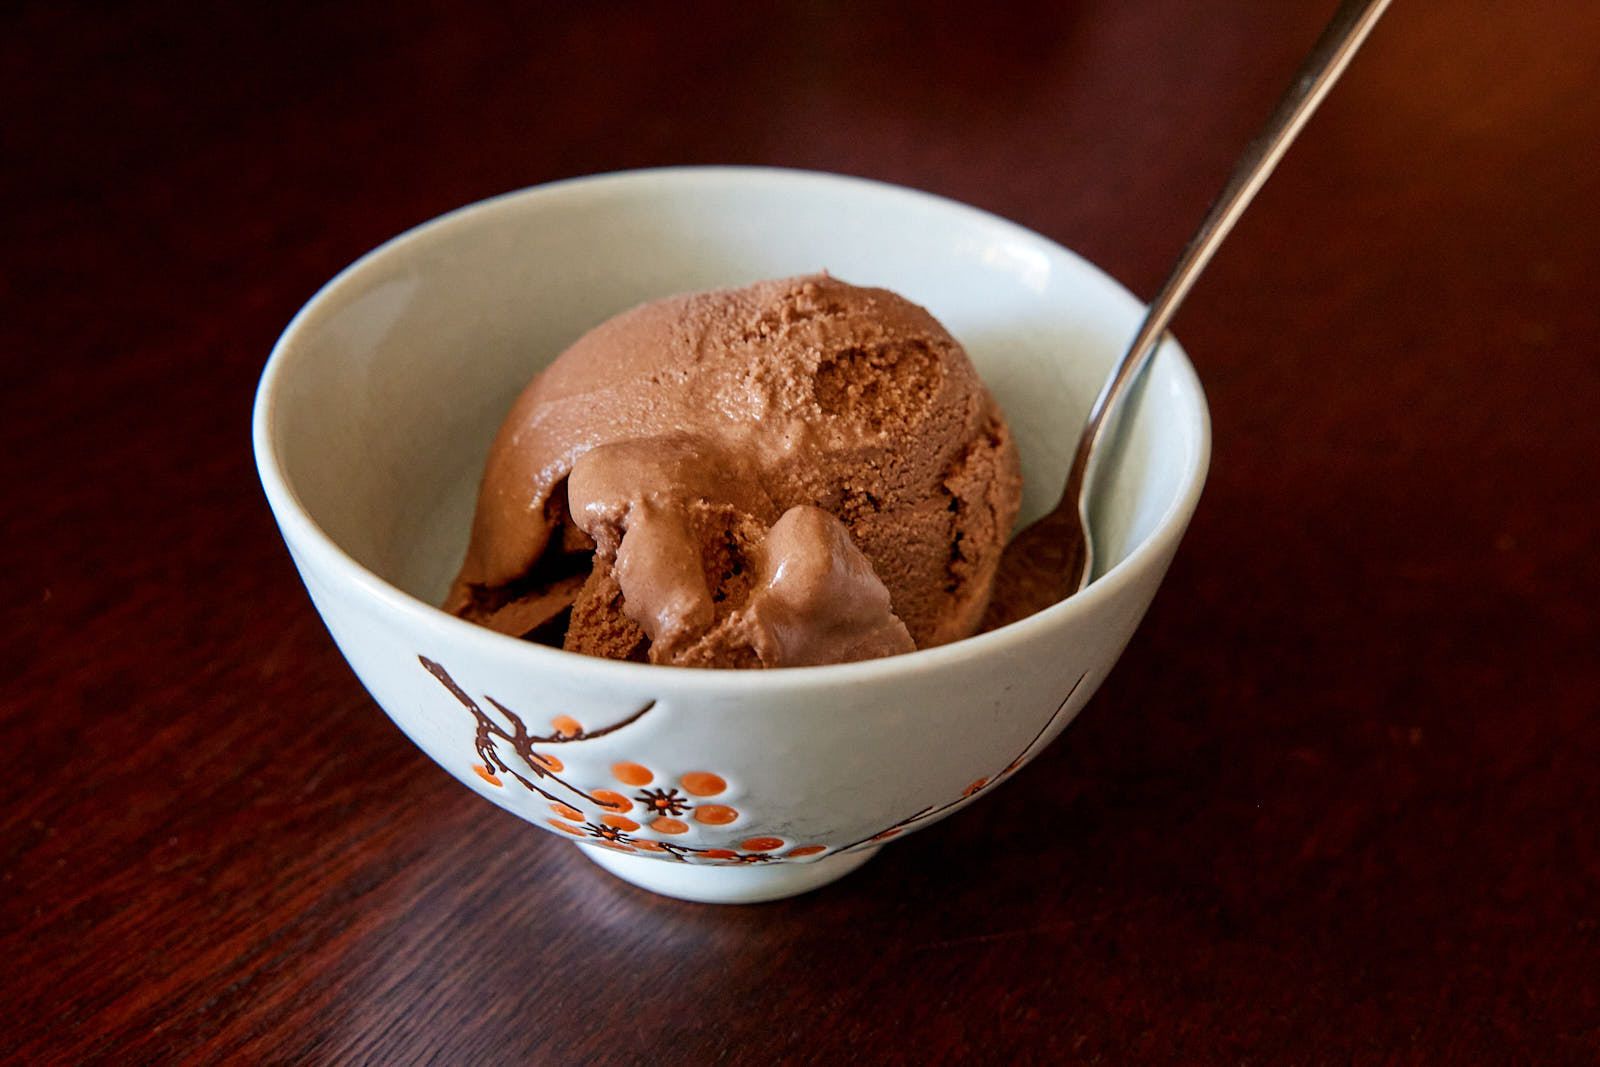 Vegan Chocolate Truffle Ice Cream